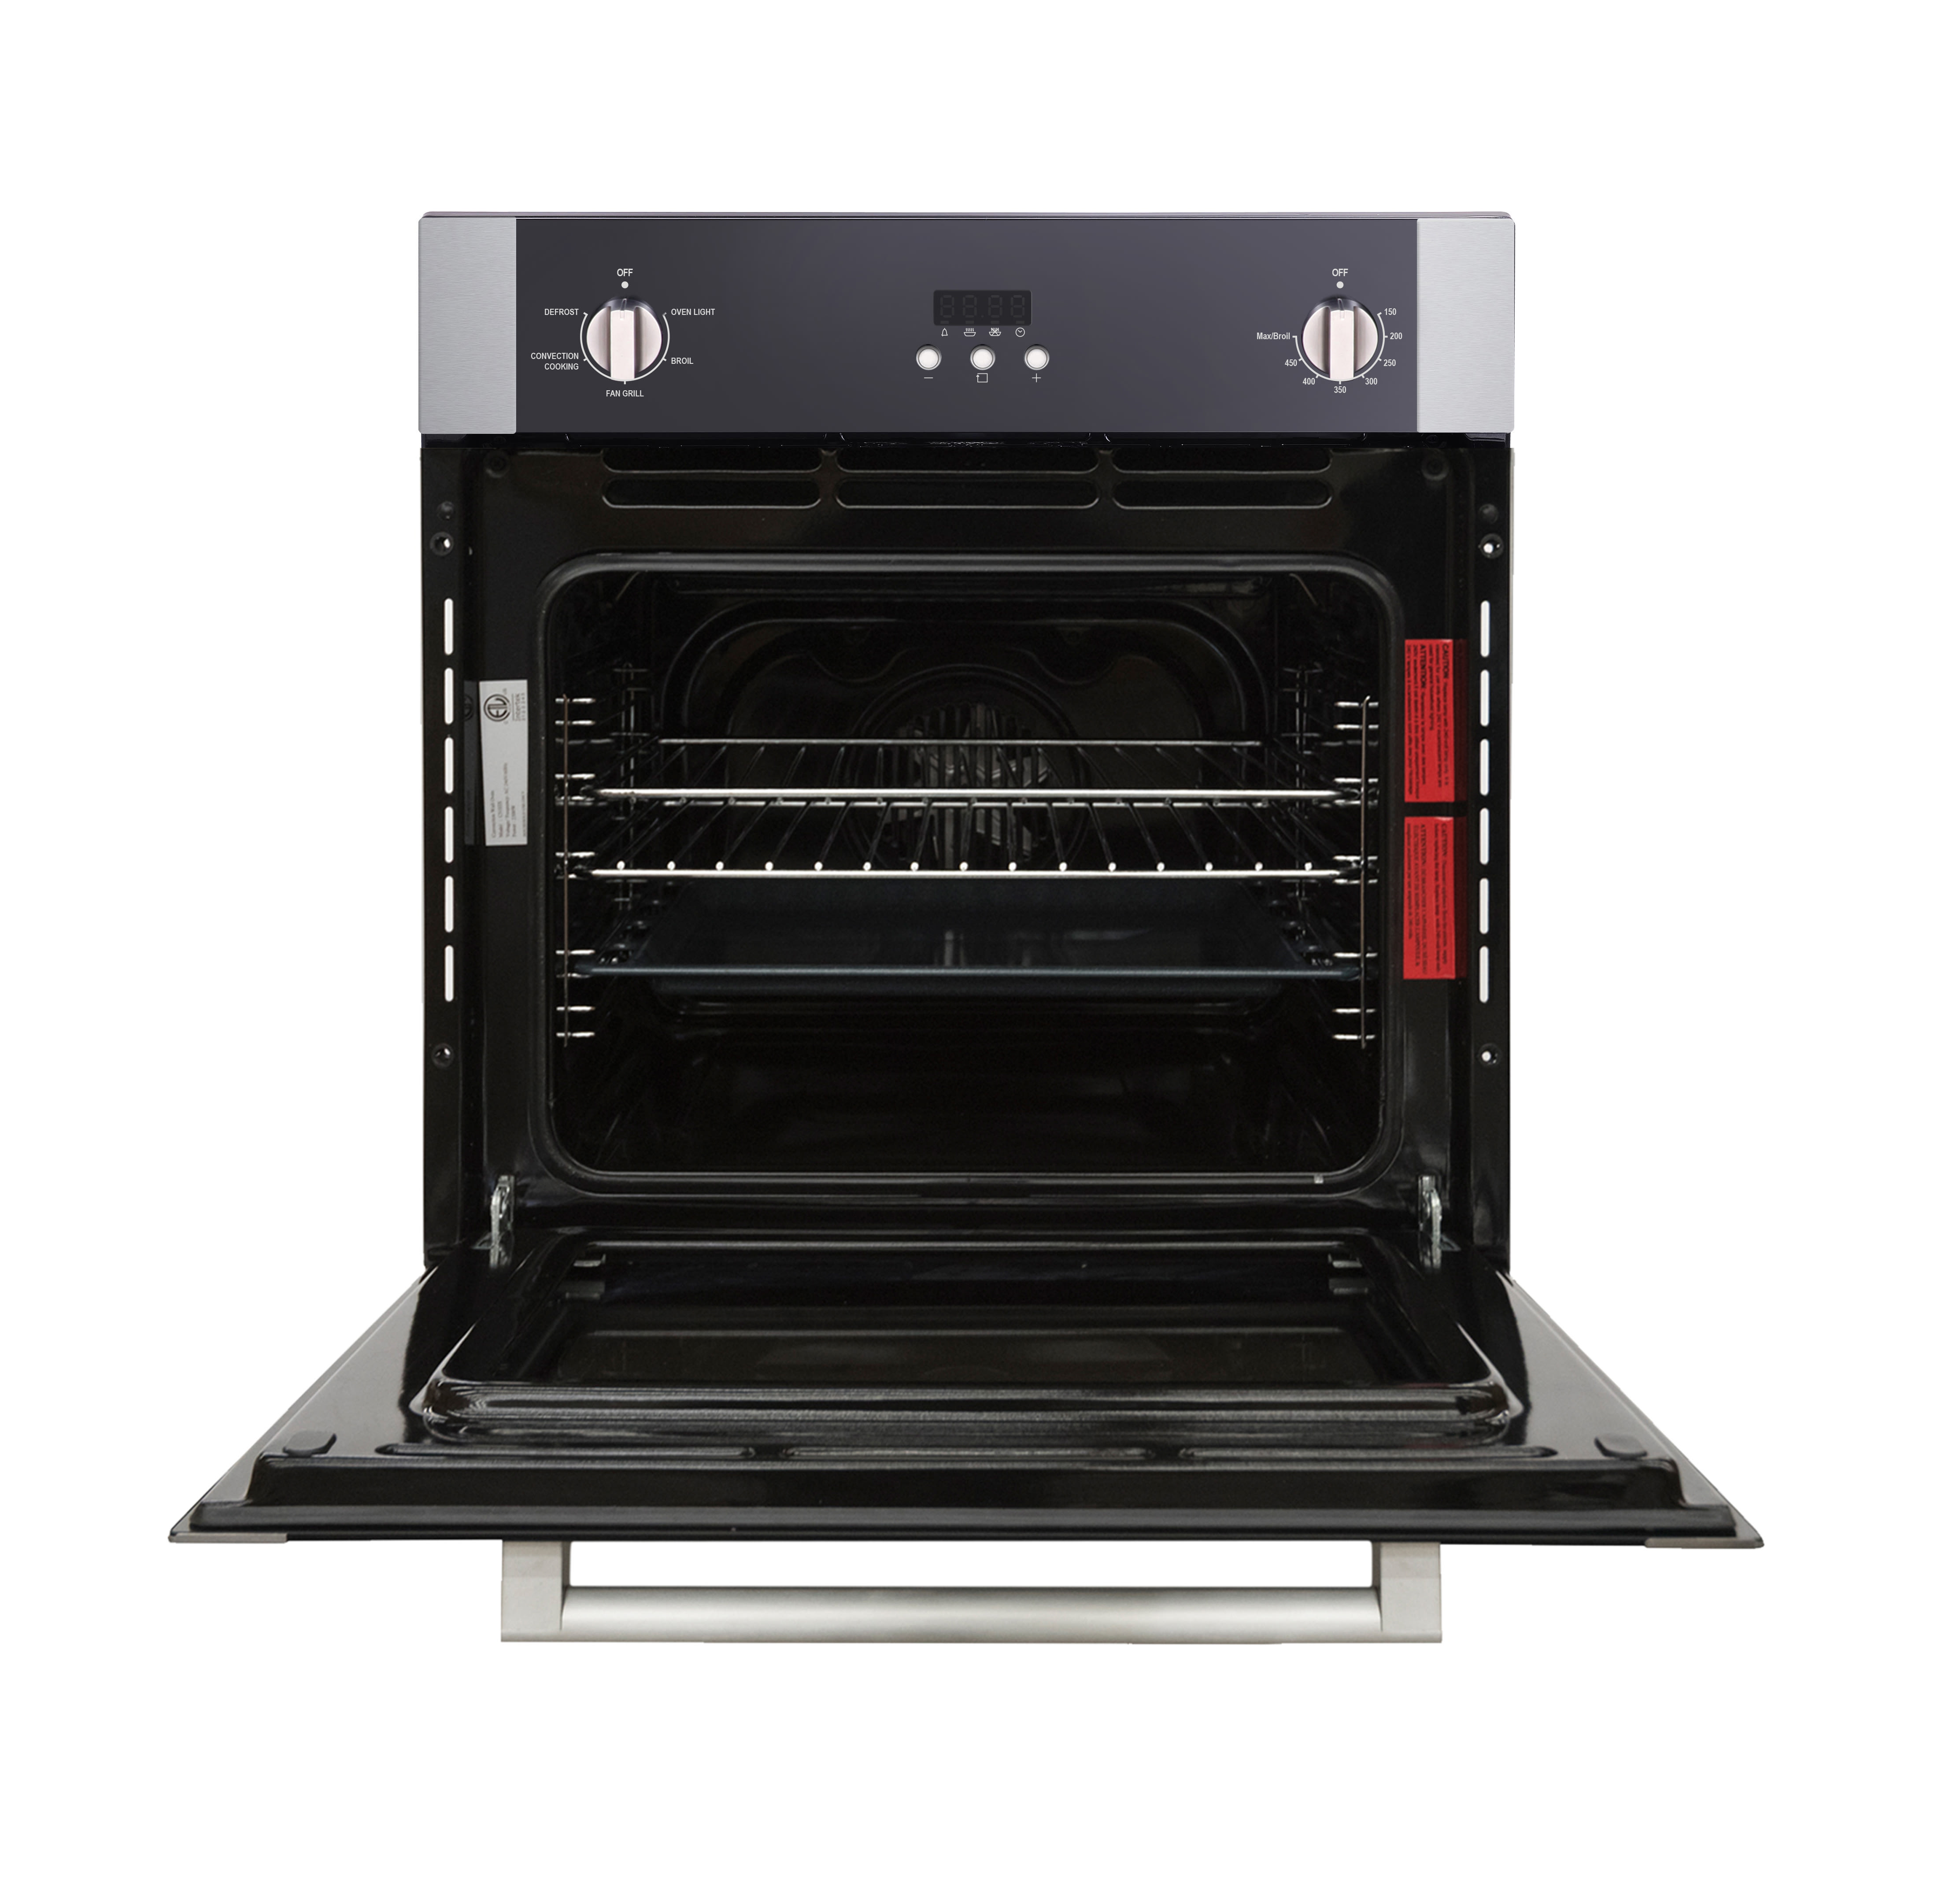 dishwasher chef appliances endearing in countertop spt dishwashers magic silver of countertops